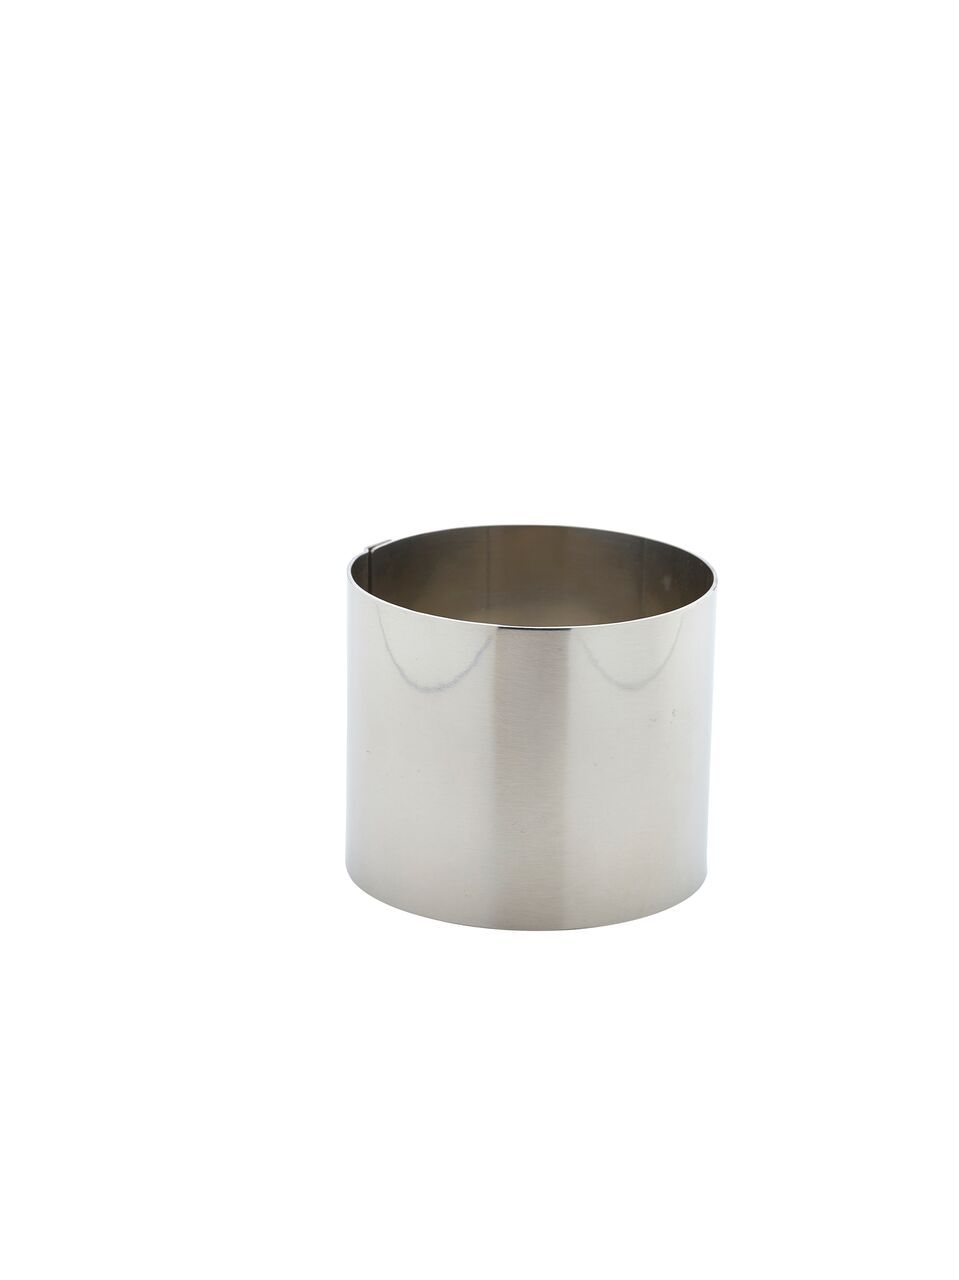 Stainless Steel Mousse Ring 7x6cm